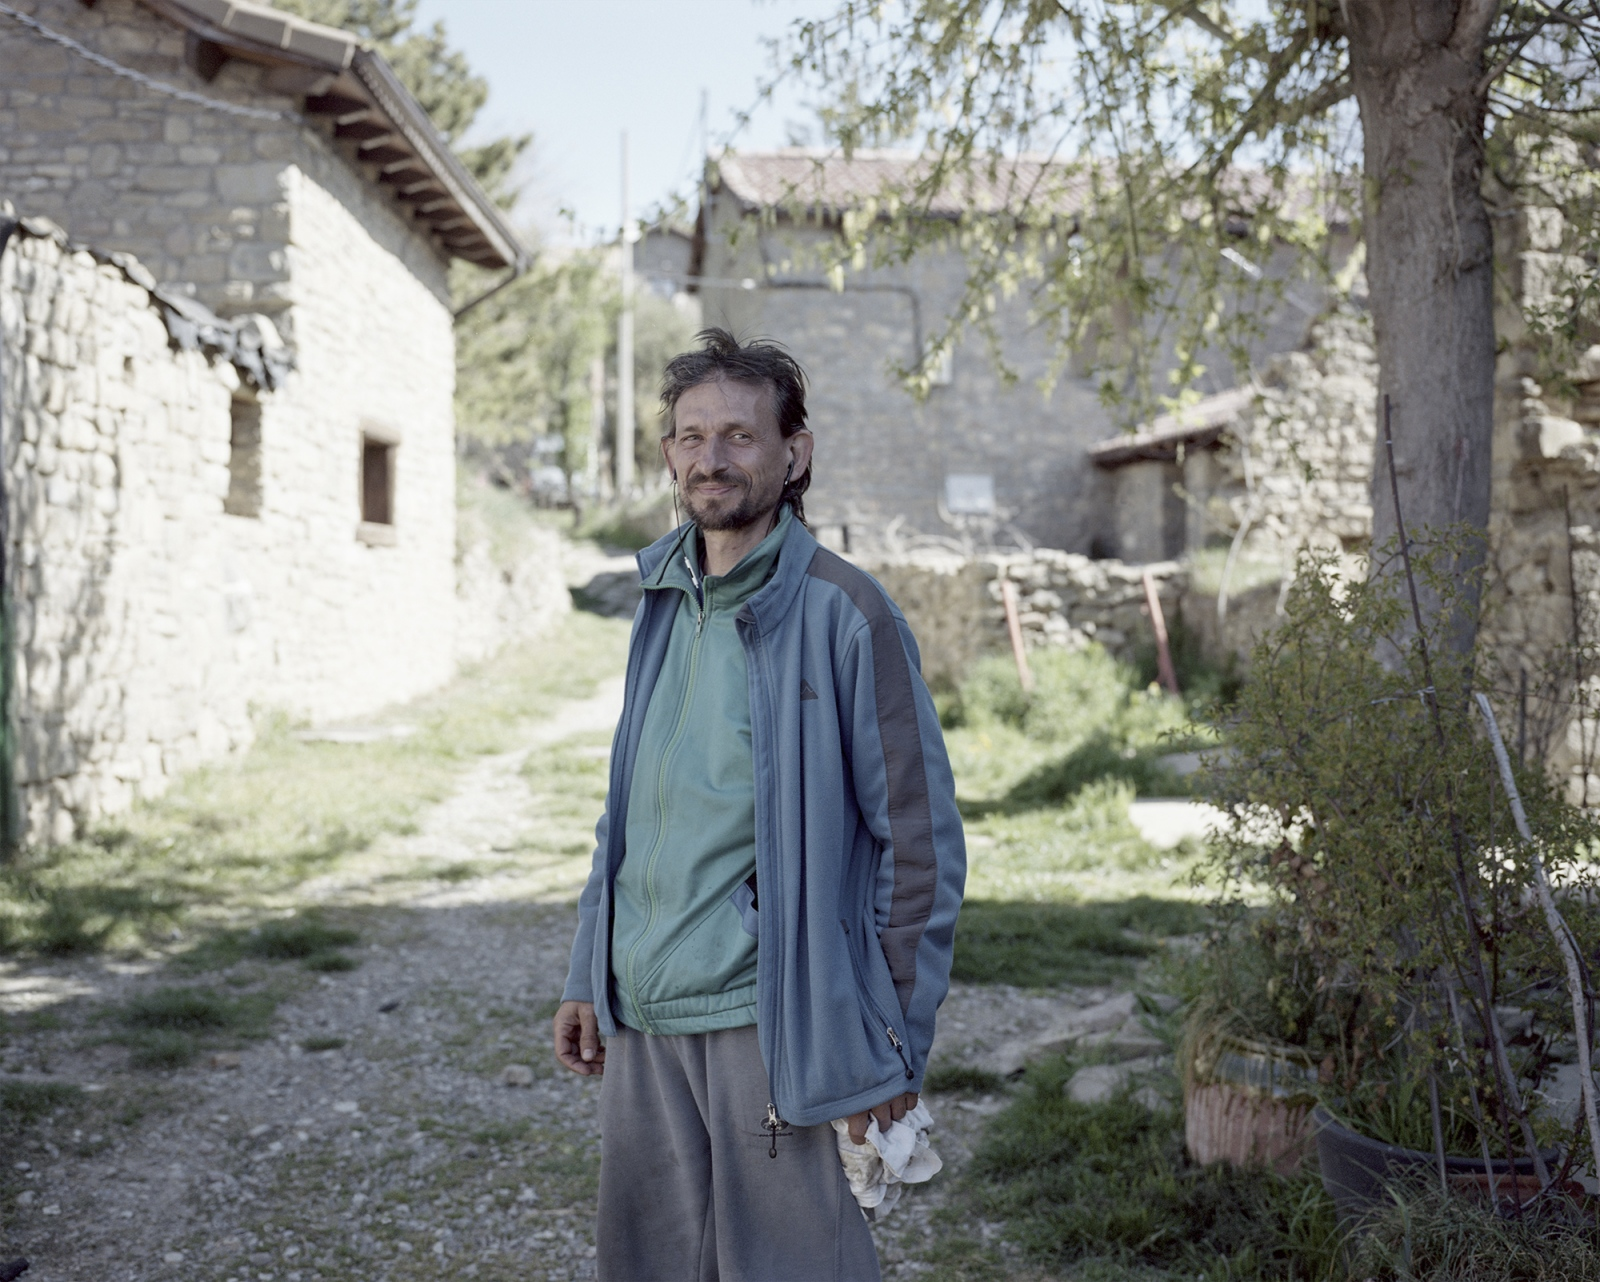 Spain, Ibort. Marco is an Italian that moved to Ibort. The village was completely uninhabited until a group of persons occupied and rebuilt some of the houses. Today the village is composed by an intercultural and international community.